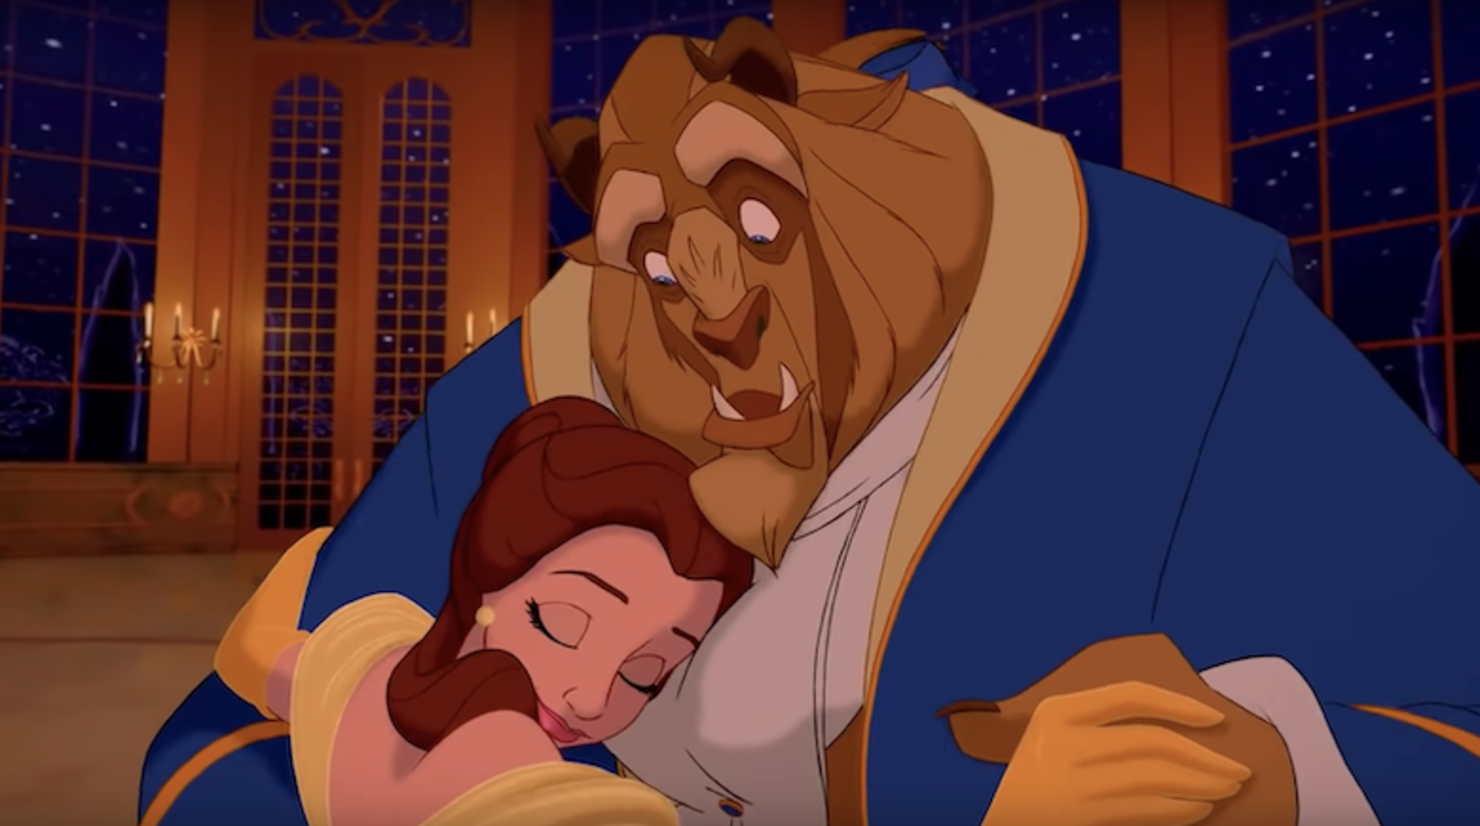 """Disney - """"Beauty and the Beast"""" from Beauty and the Beast"""